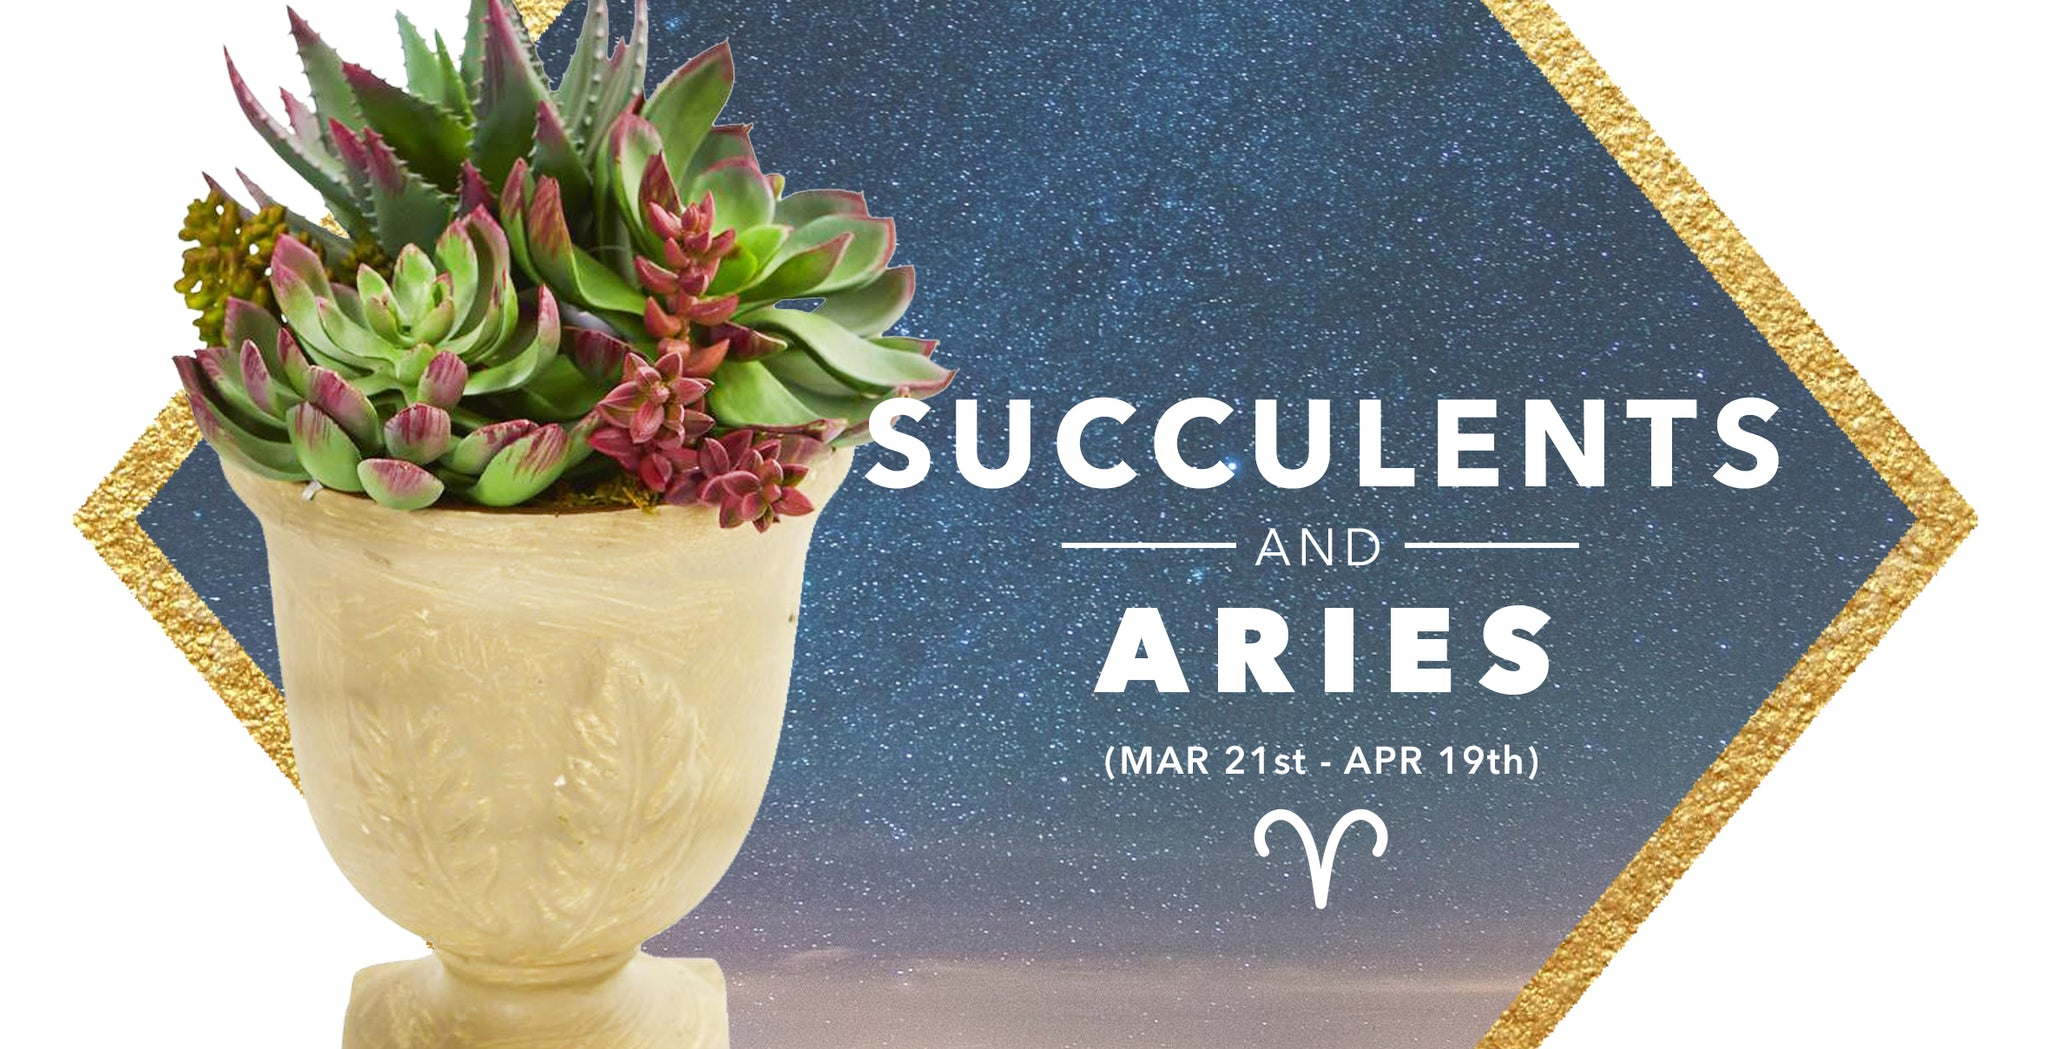 ARTIFICIAL SUCCULENTS & ARIES